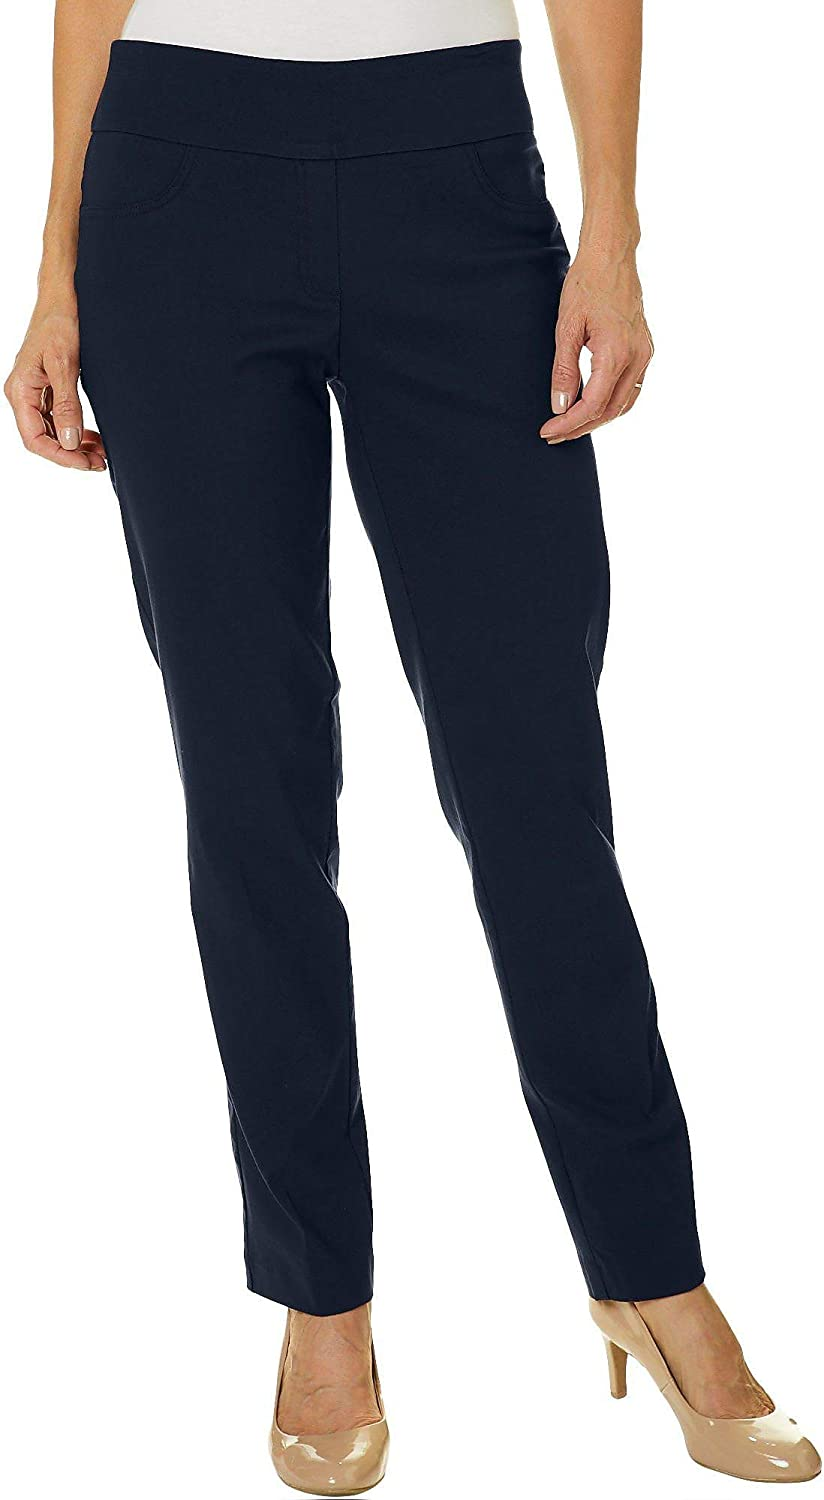 Ruby Rd. Womens Plus-Size Mid-Rise Pull-On Straight Solar Millenium Tech Pant Navy Size 16W